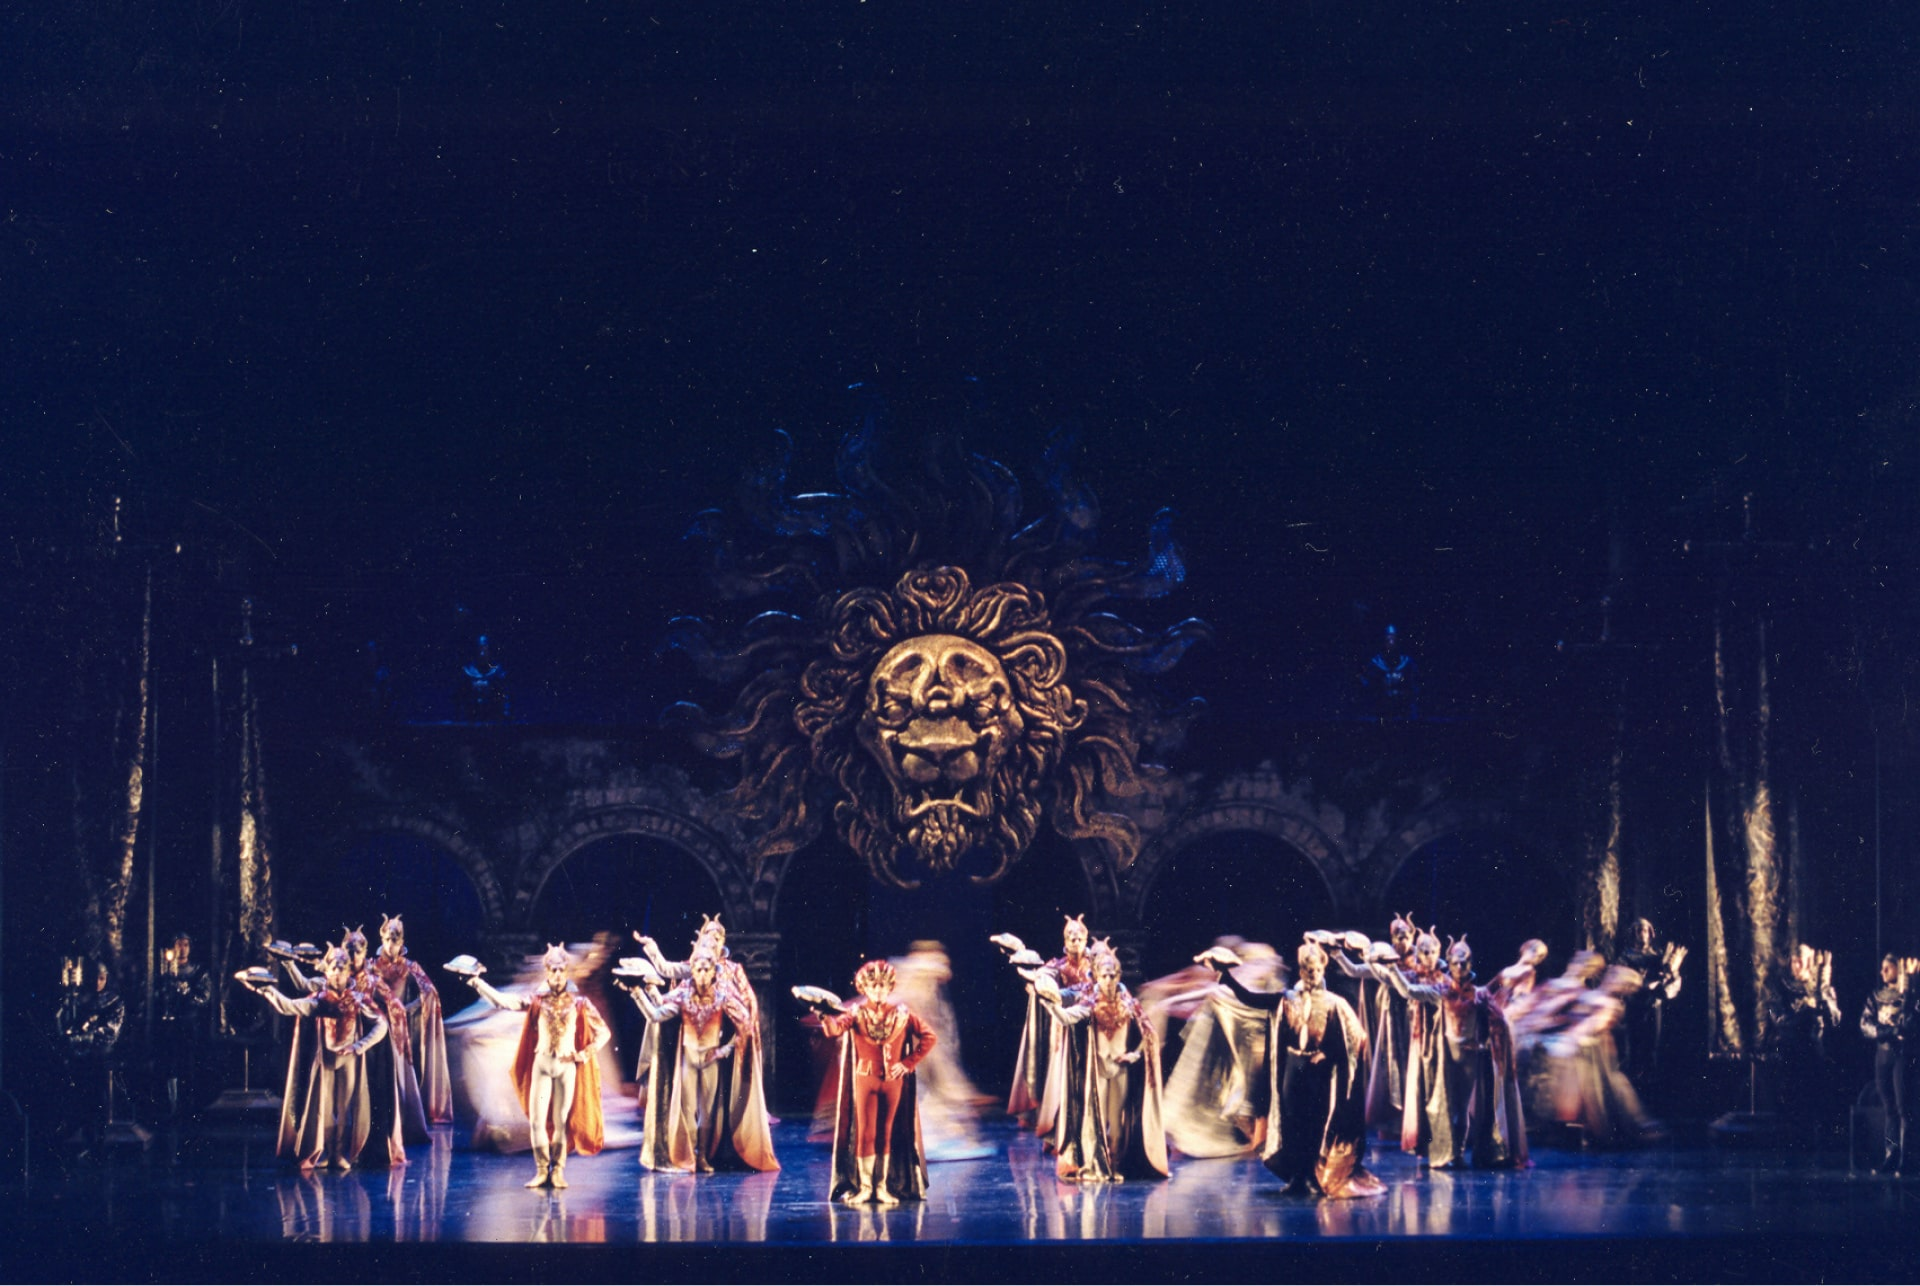 Lines of servants dance holding platters aloft on shiny stage in front of darkened bridge and lion's head statue.